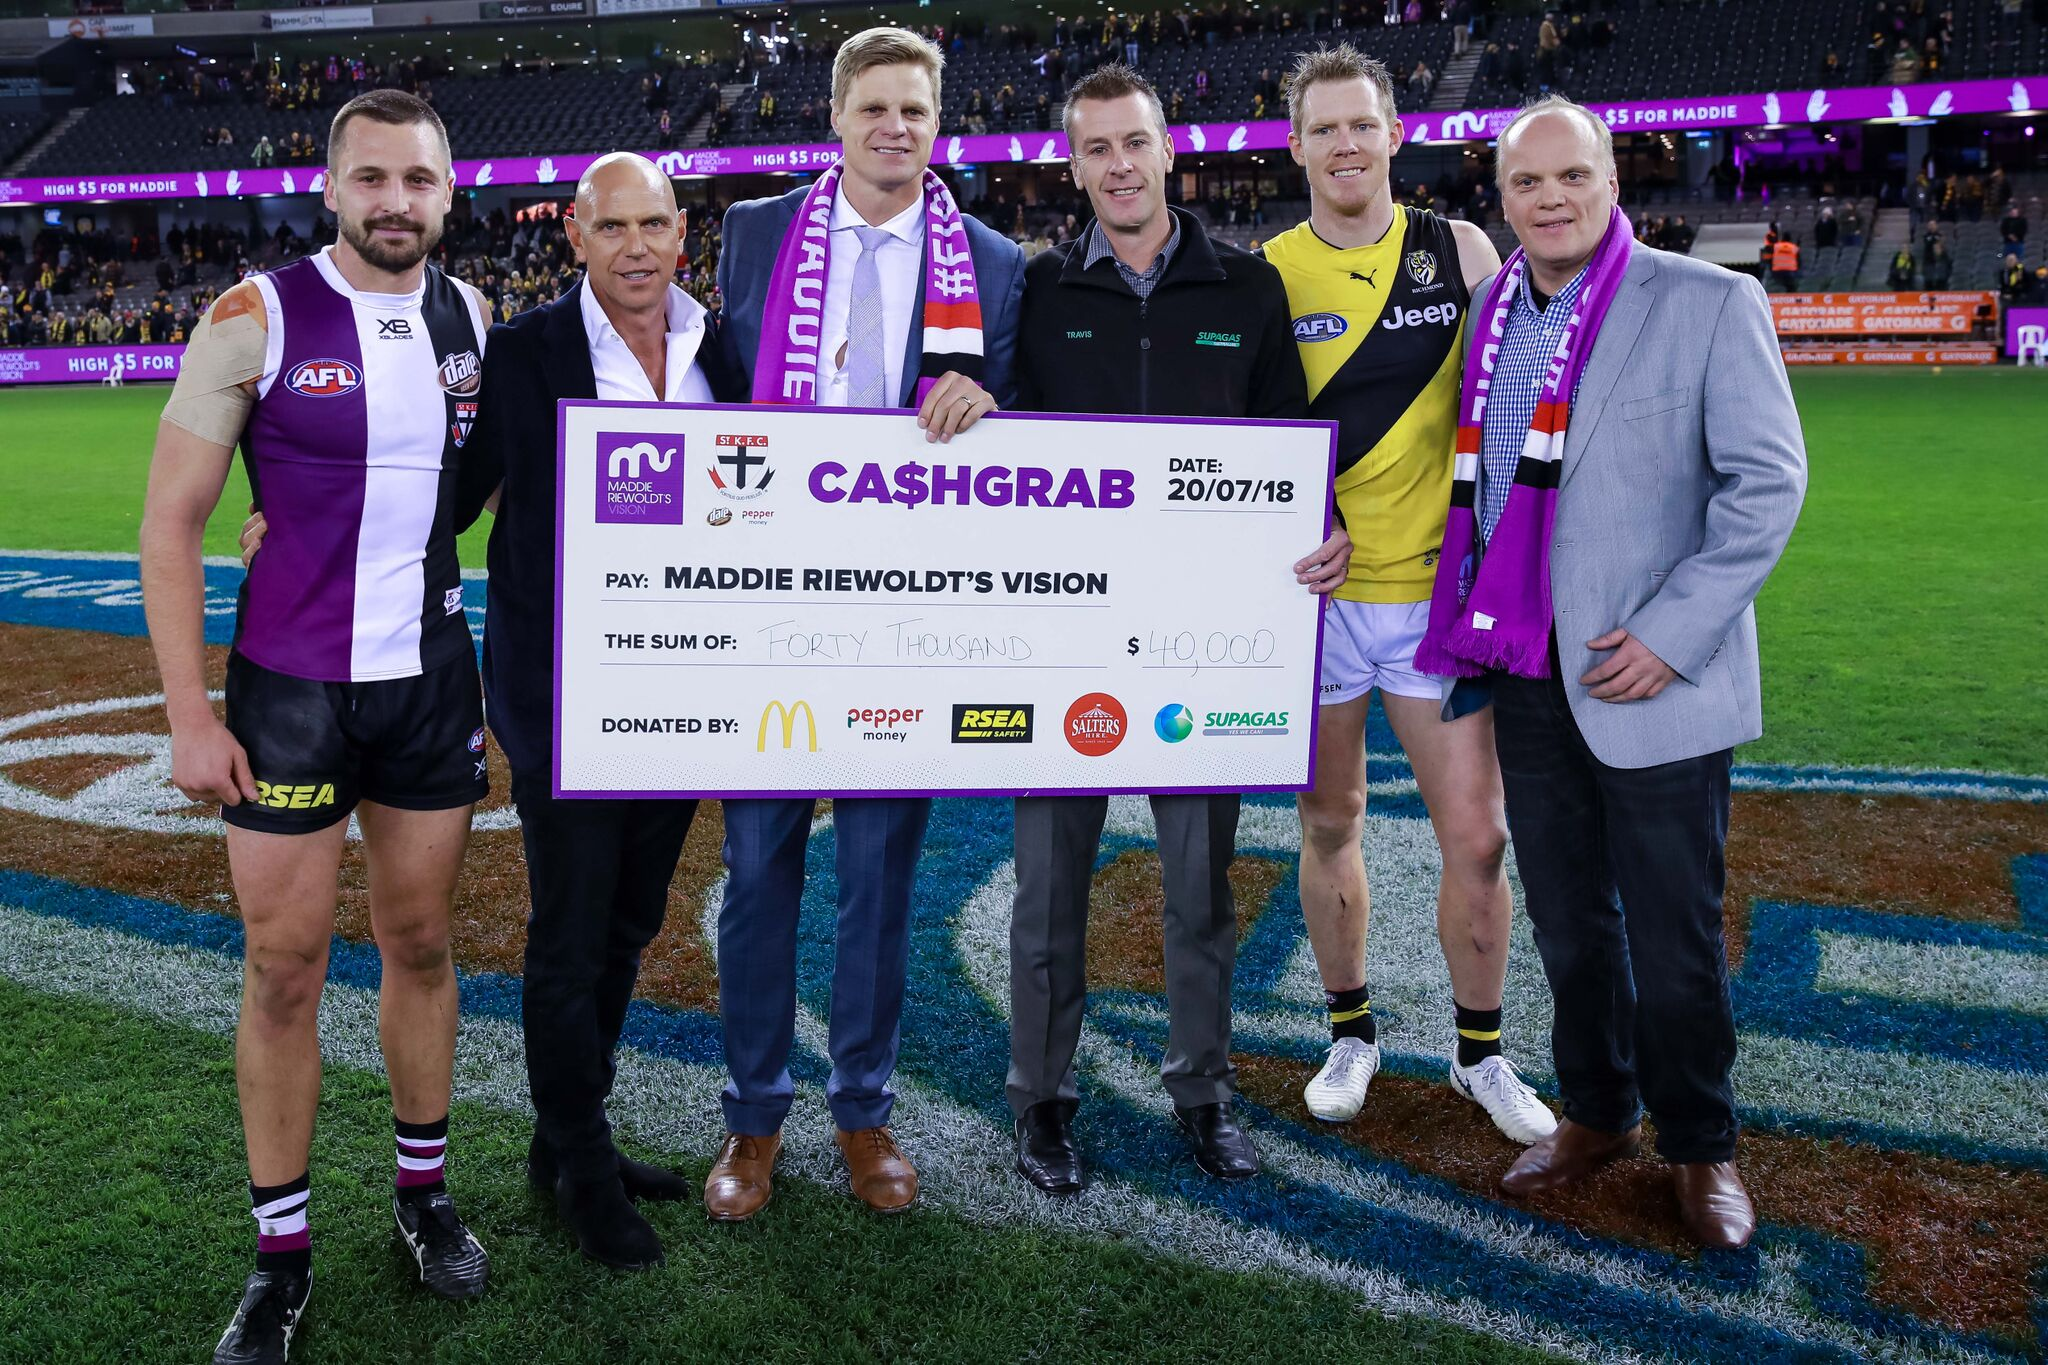 It Was An Amazing Night As The Crowd Of Over 37000 Celebrated The Life Of Maddie Riewoldt In A Sea Of Purple Through Crowd Attendance Direct Donations